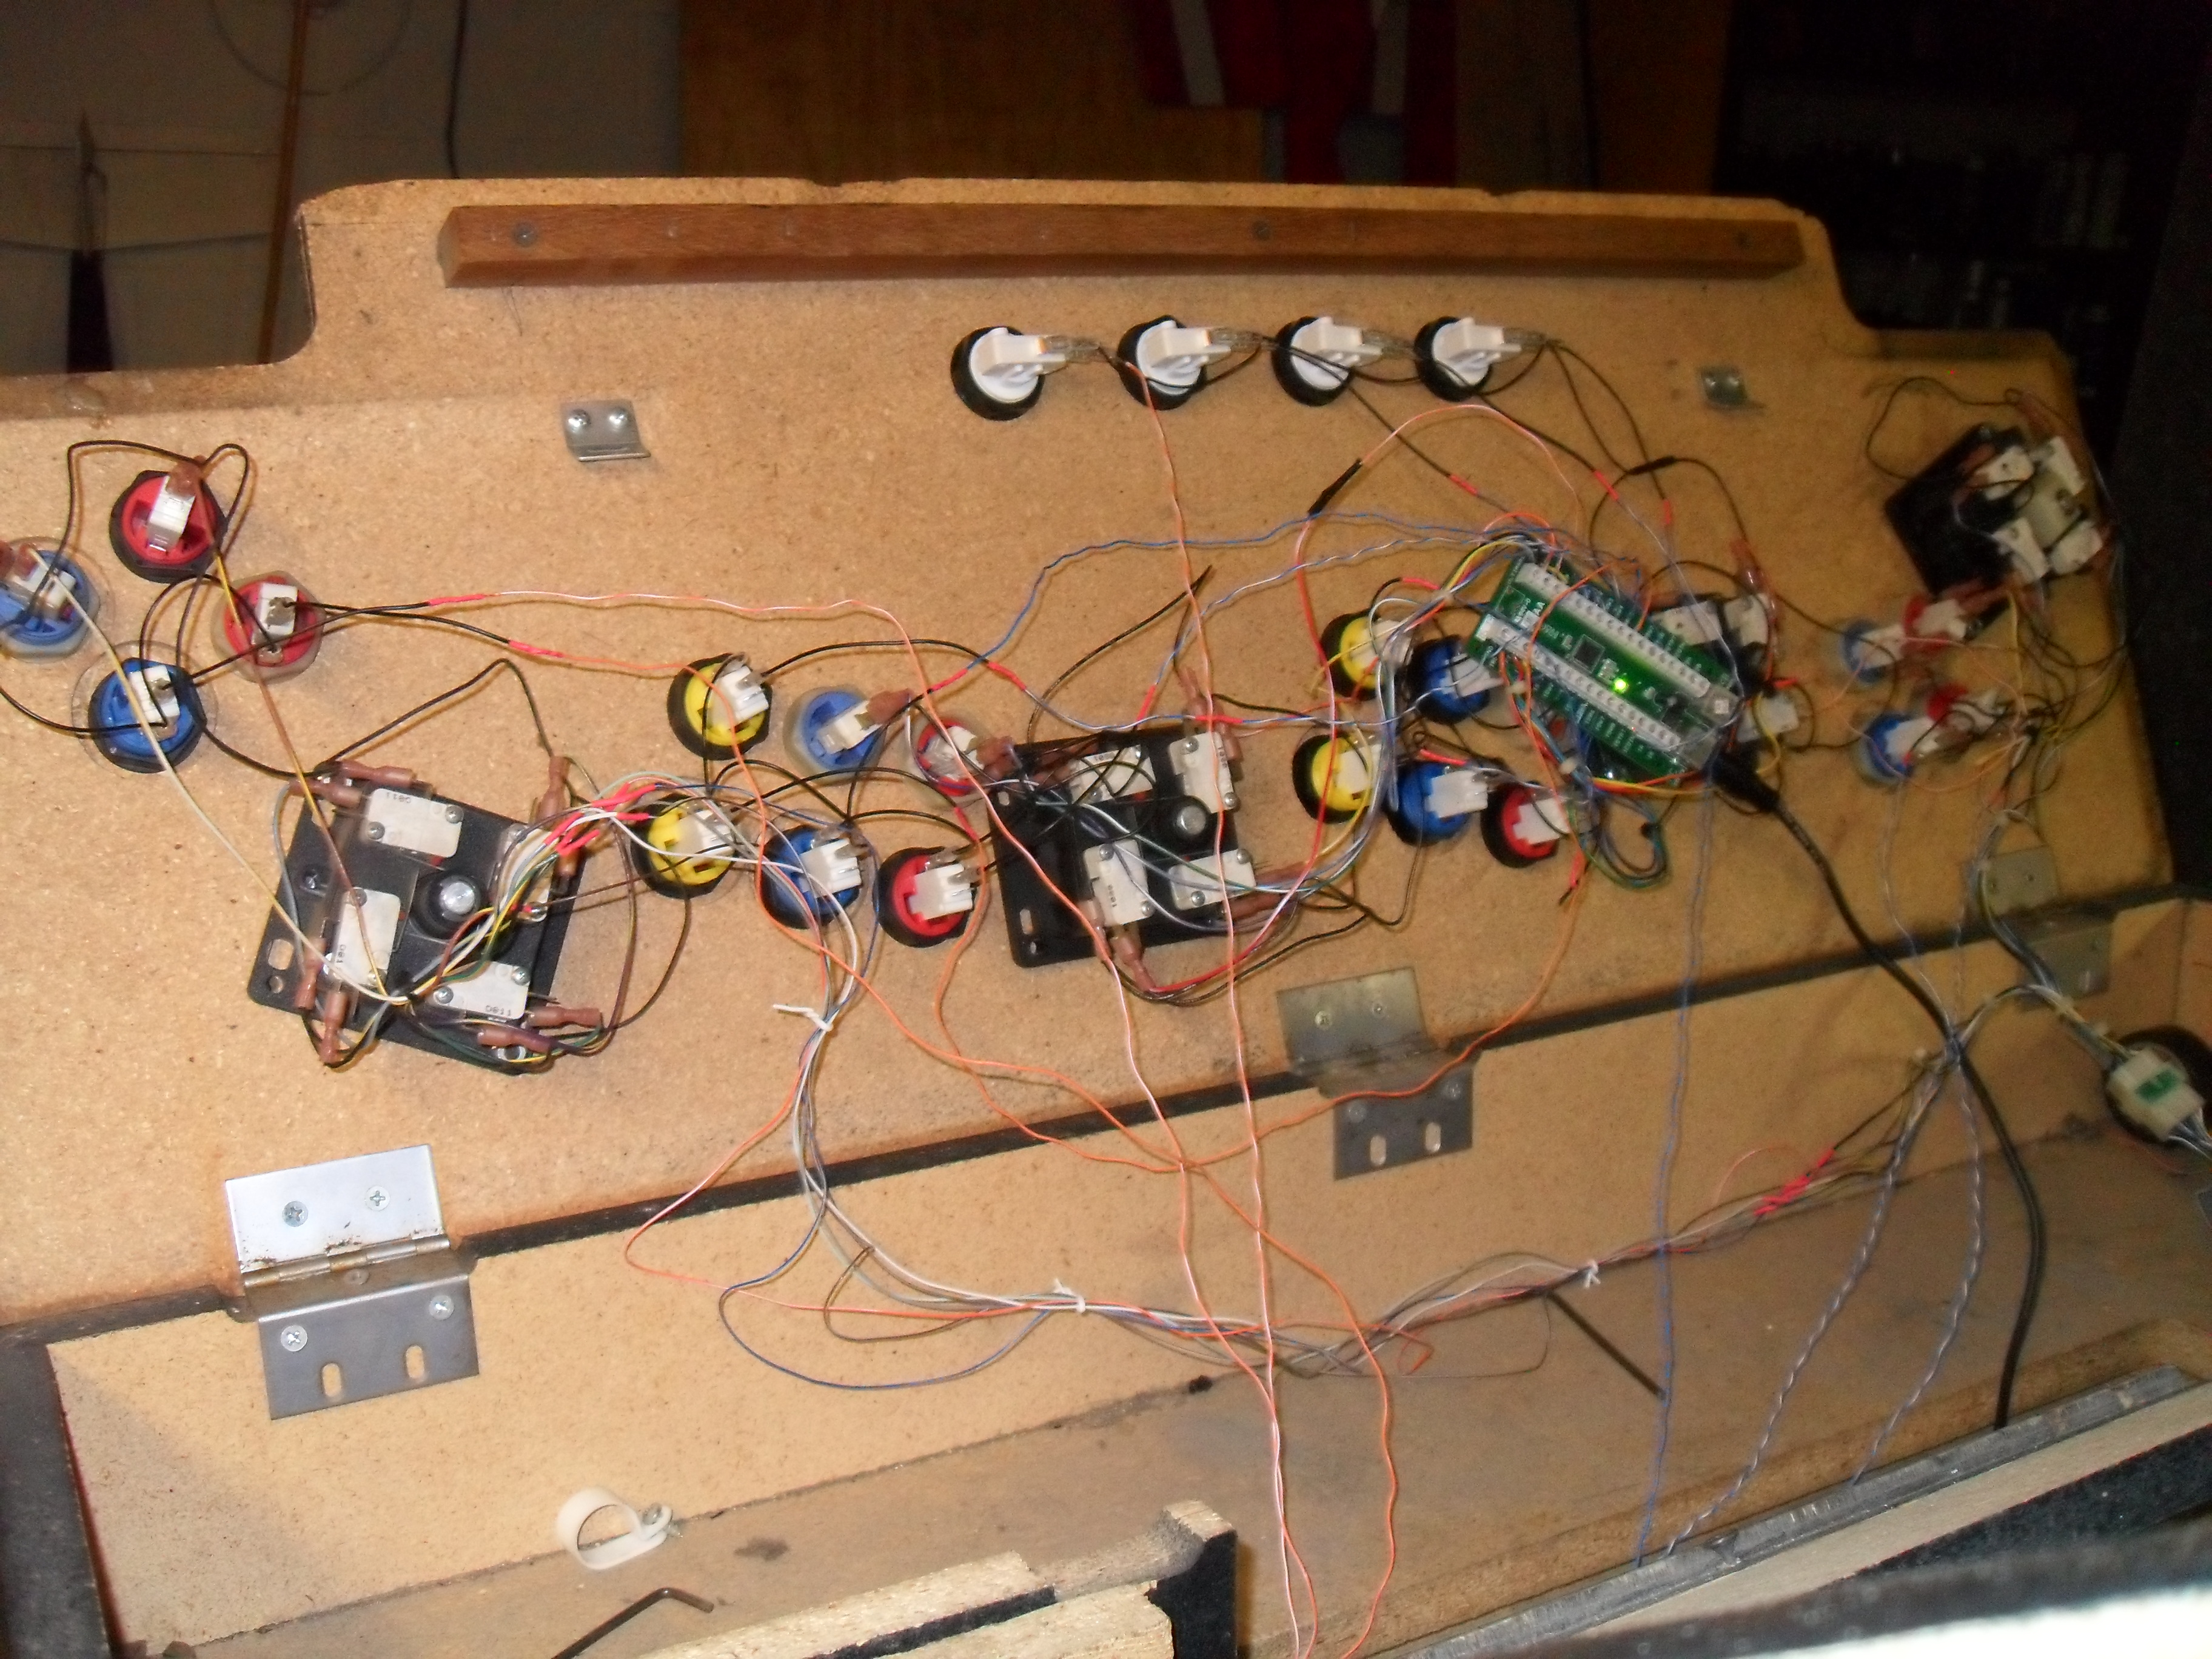 Completed control panel underside